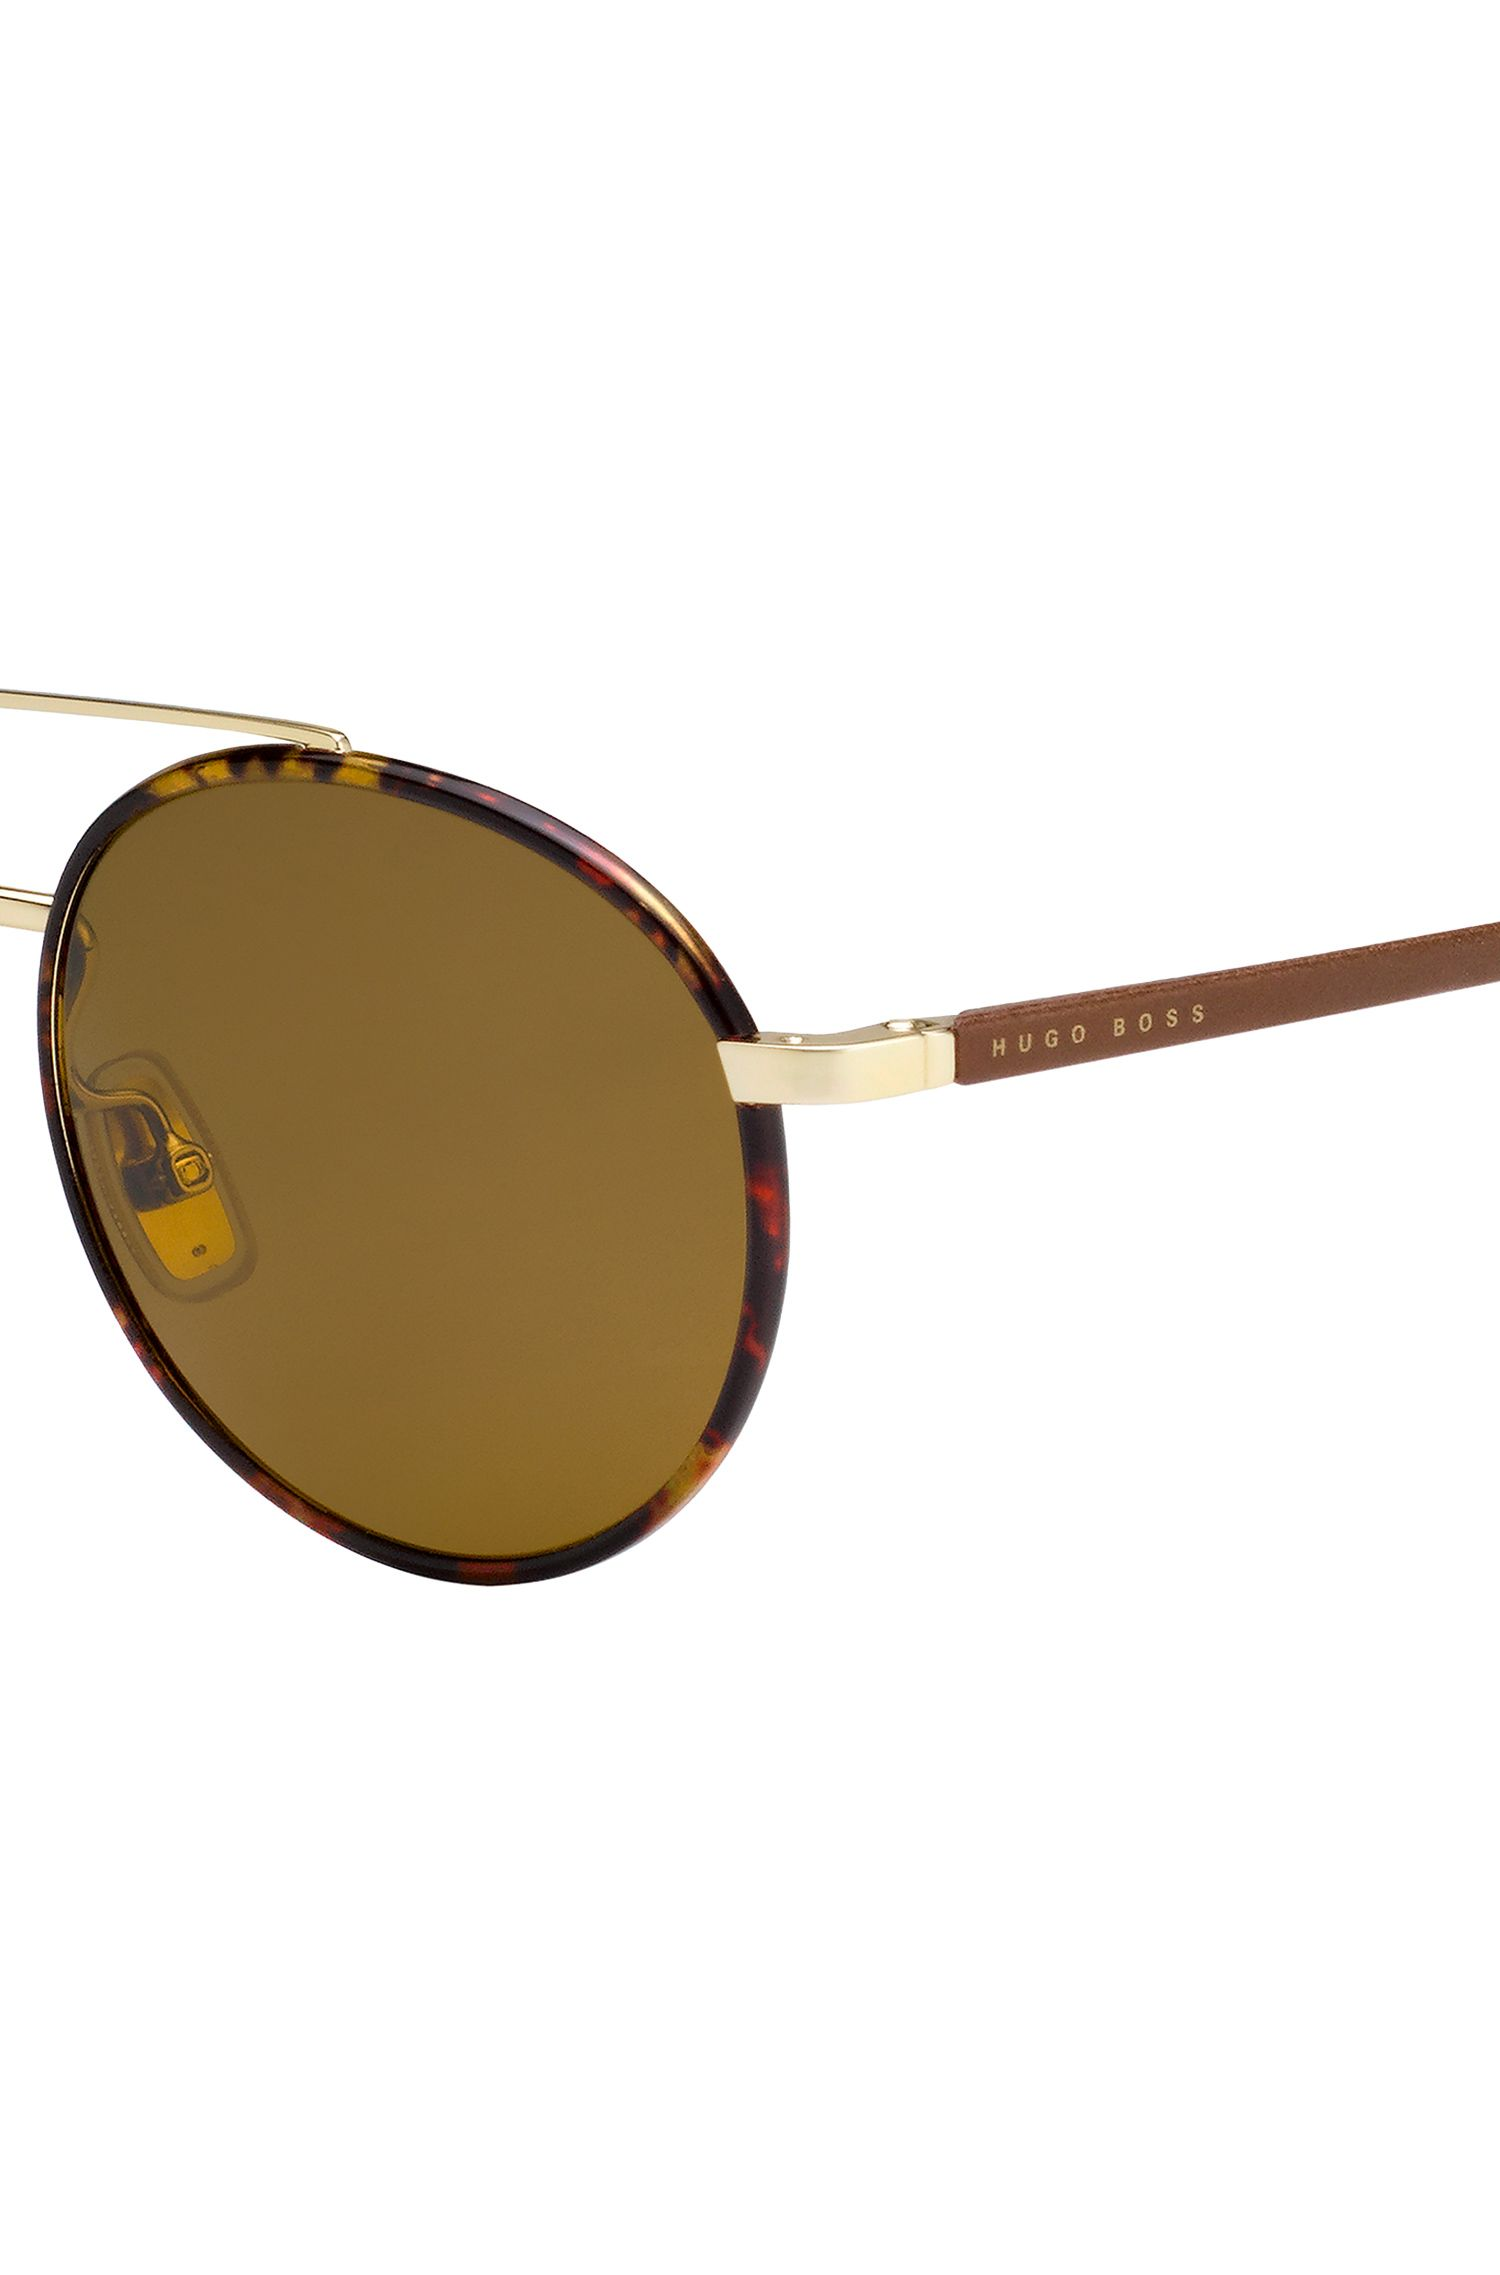 Brown Lens Round Leather Wrapped Sunglasses | BOSS 0886S, Assorted-Pre-Pack